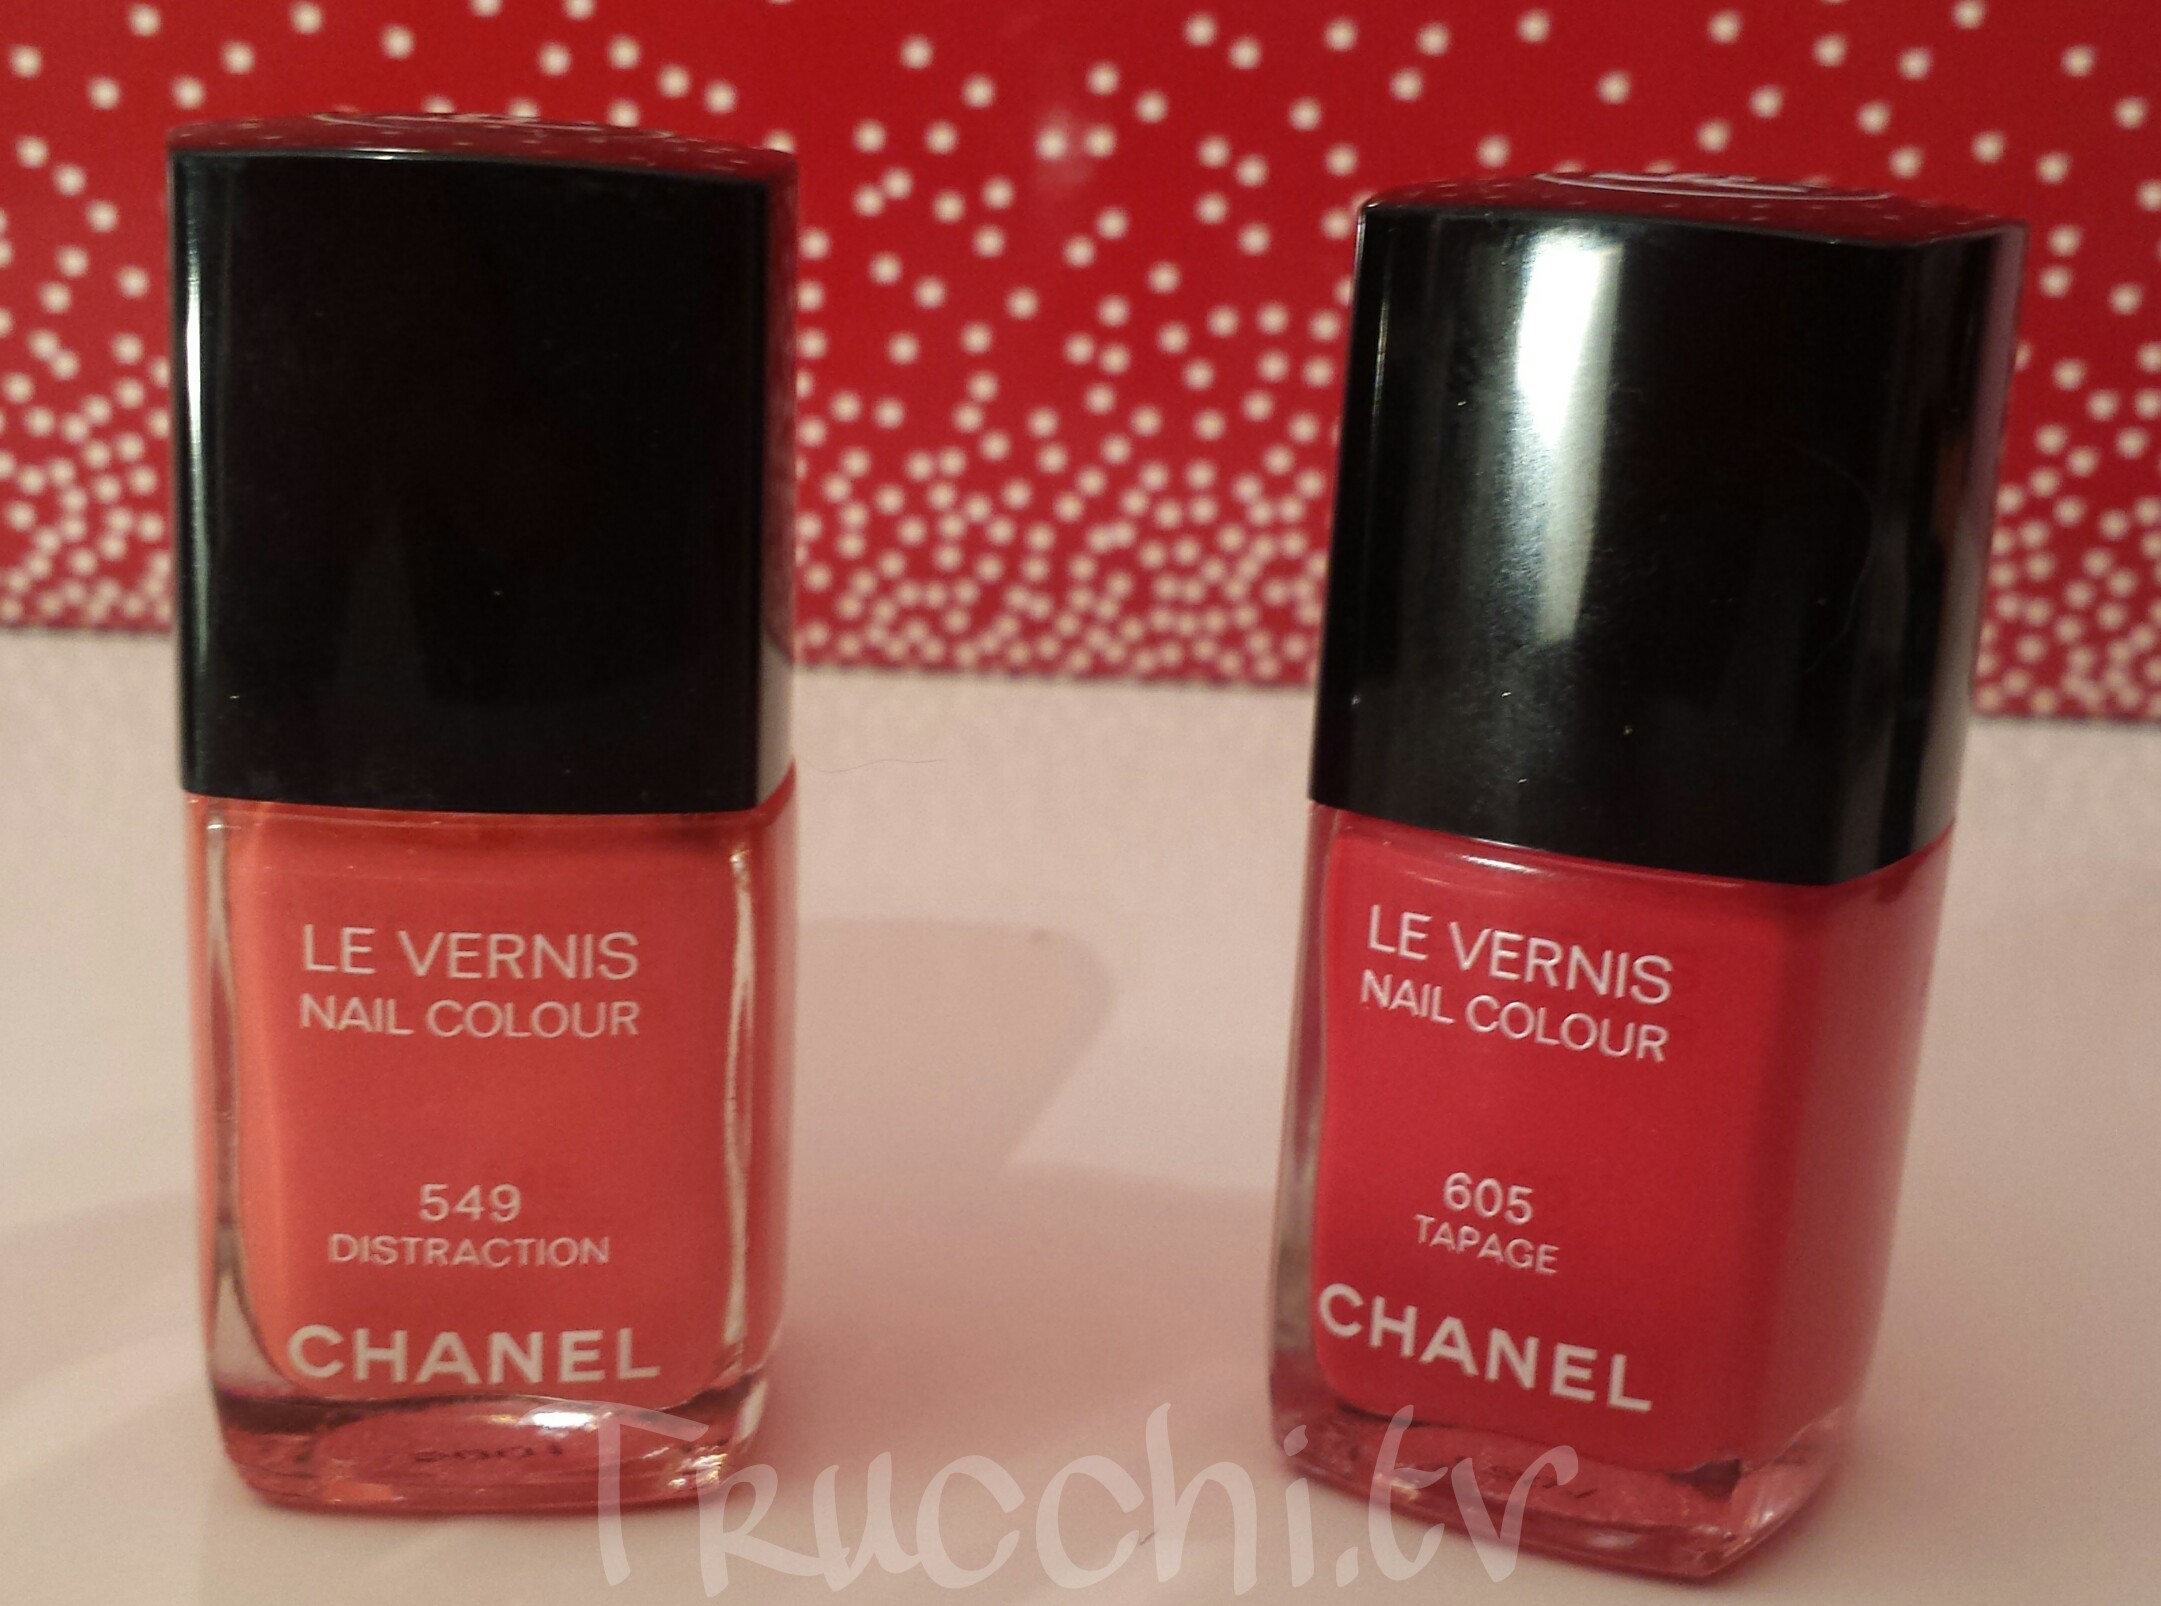 chanel tapage 605 chanel distraction 549